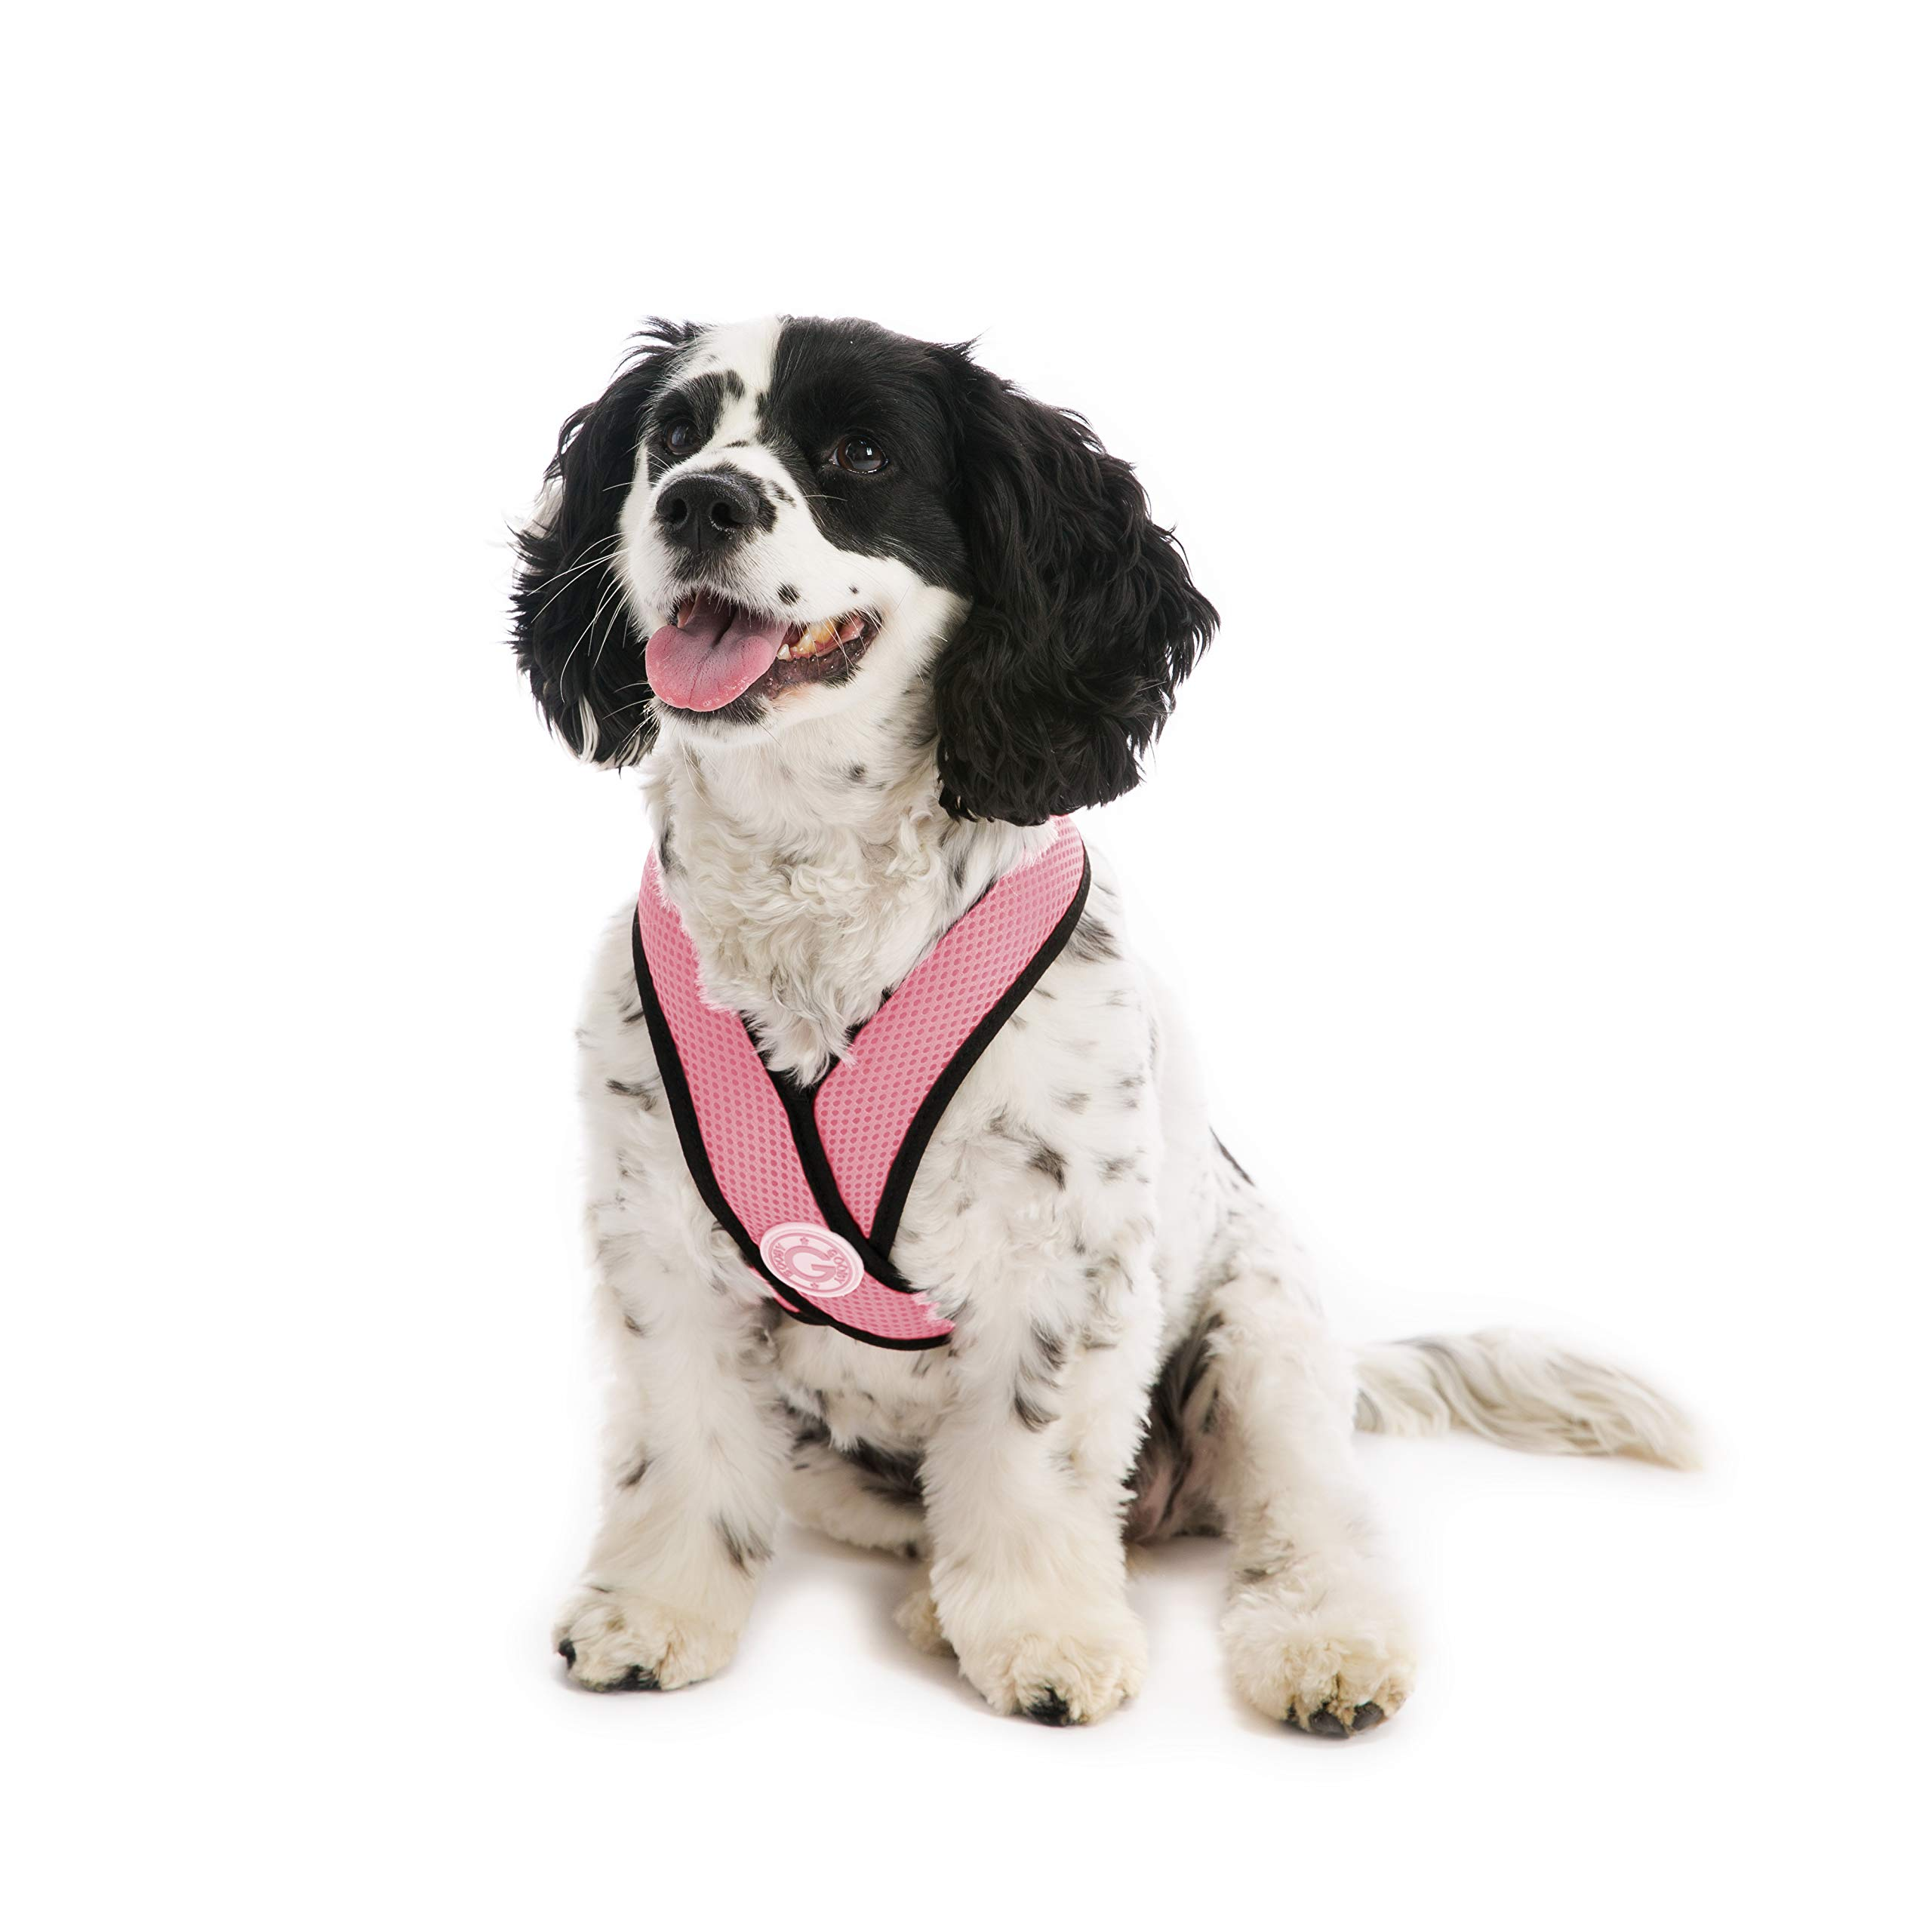 Gooby - Comfort X Head-in Harness, Choke Free Small Dog Harness with Micro Suede Trimming and Patented X Frame, Pink, X-Large by Gooby